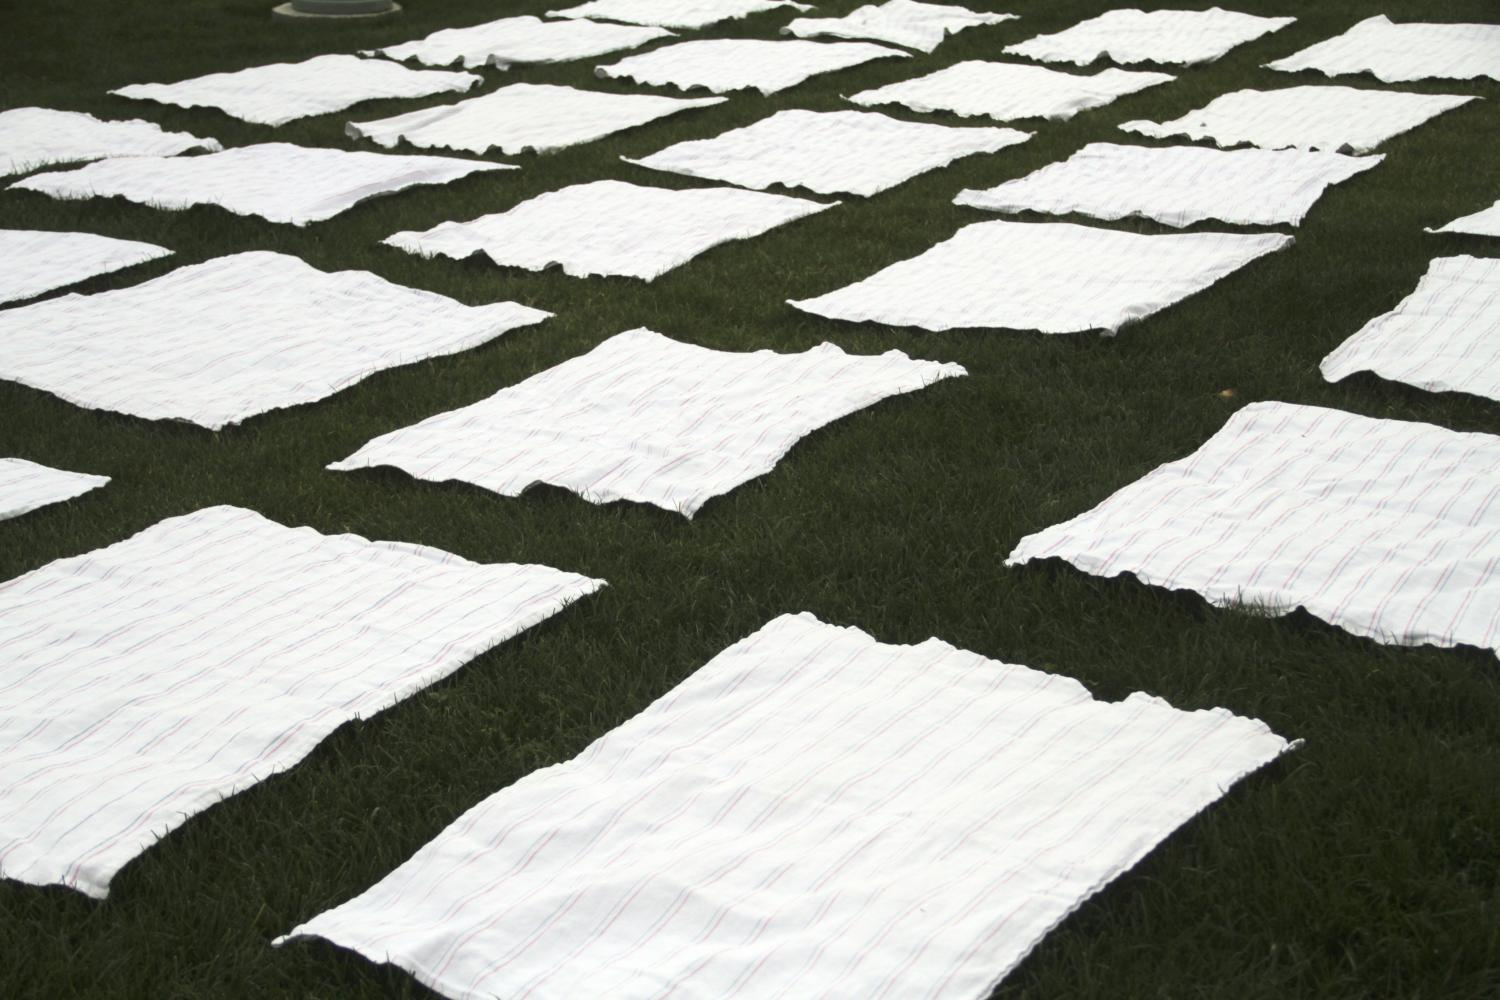 blankets on the Capitol lawn represent recent mothers that have died in Arizona